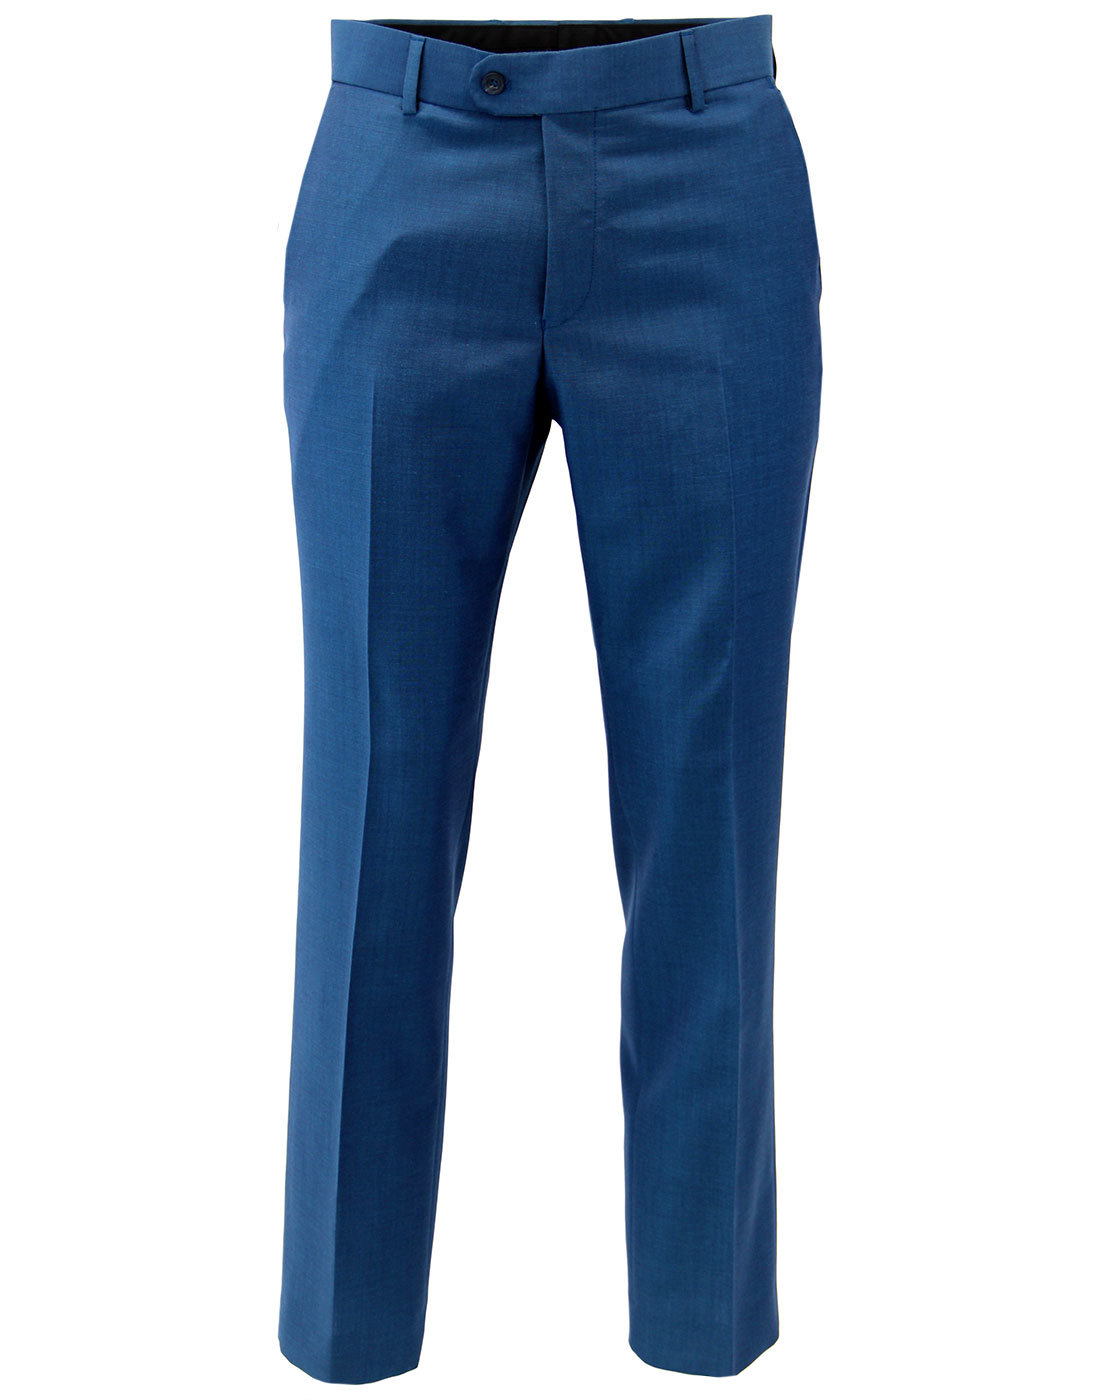 Retro 60s Mod Turquoise Mohair Blend Slim Trousers